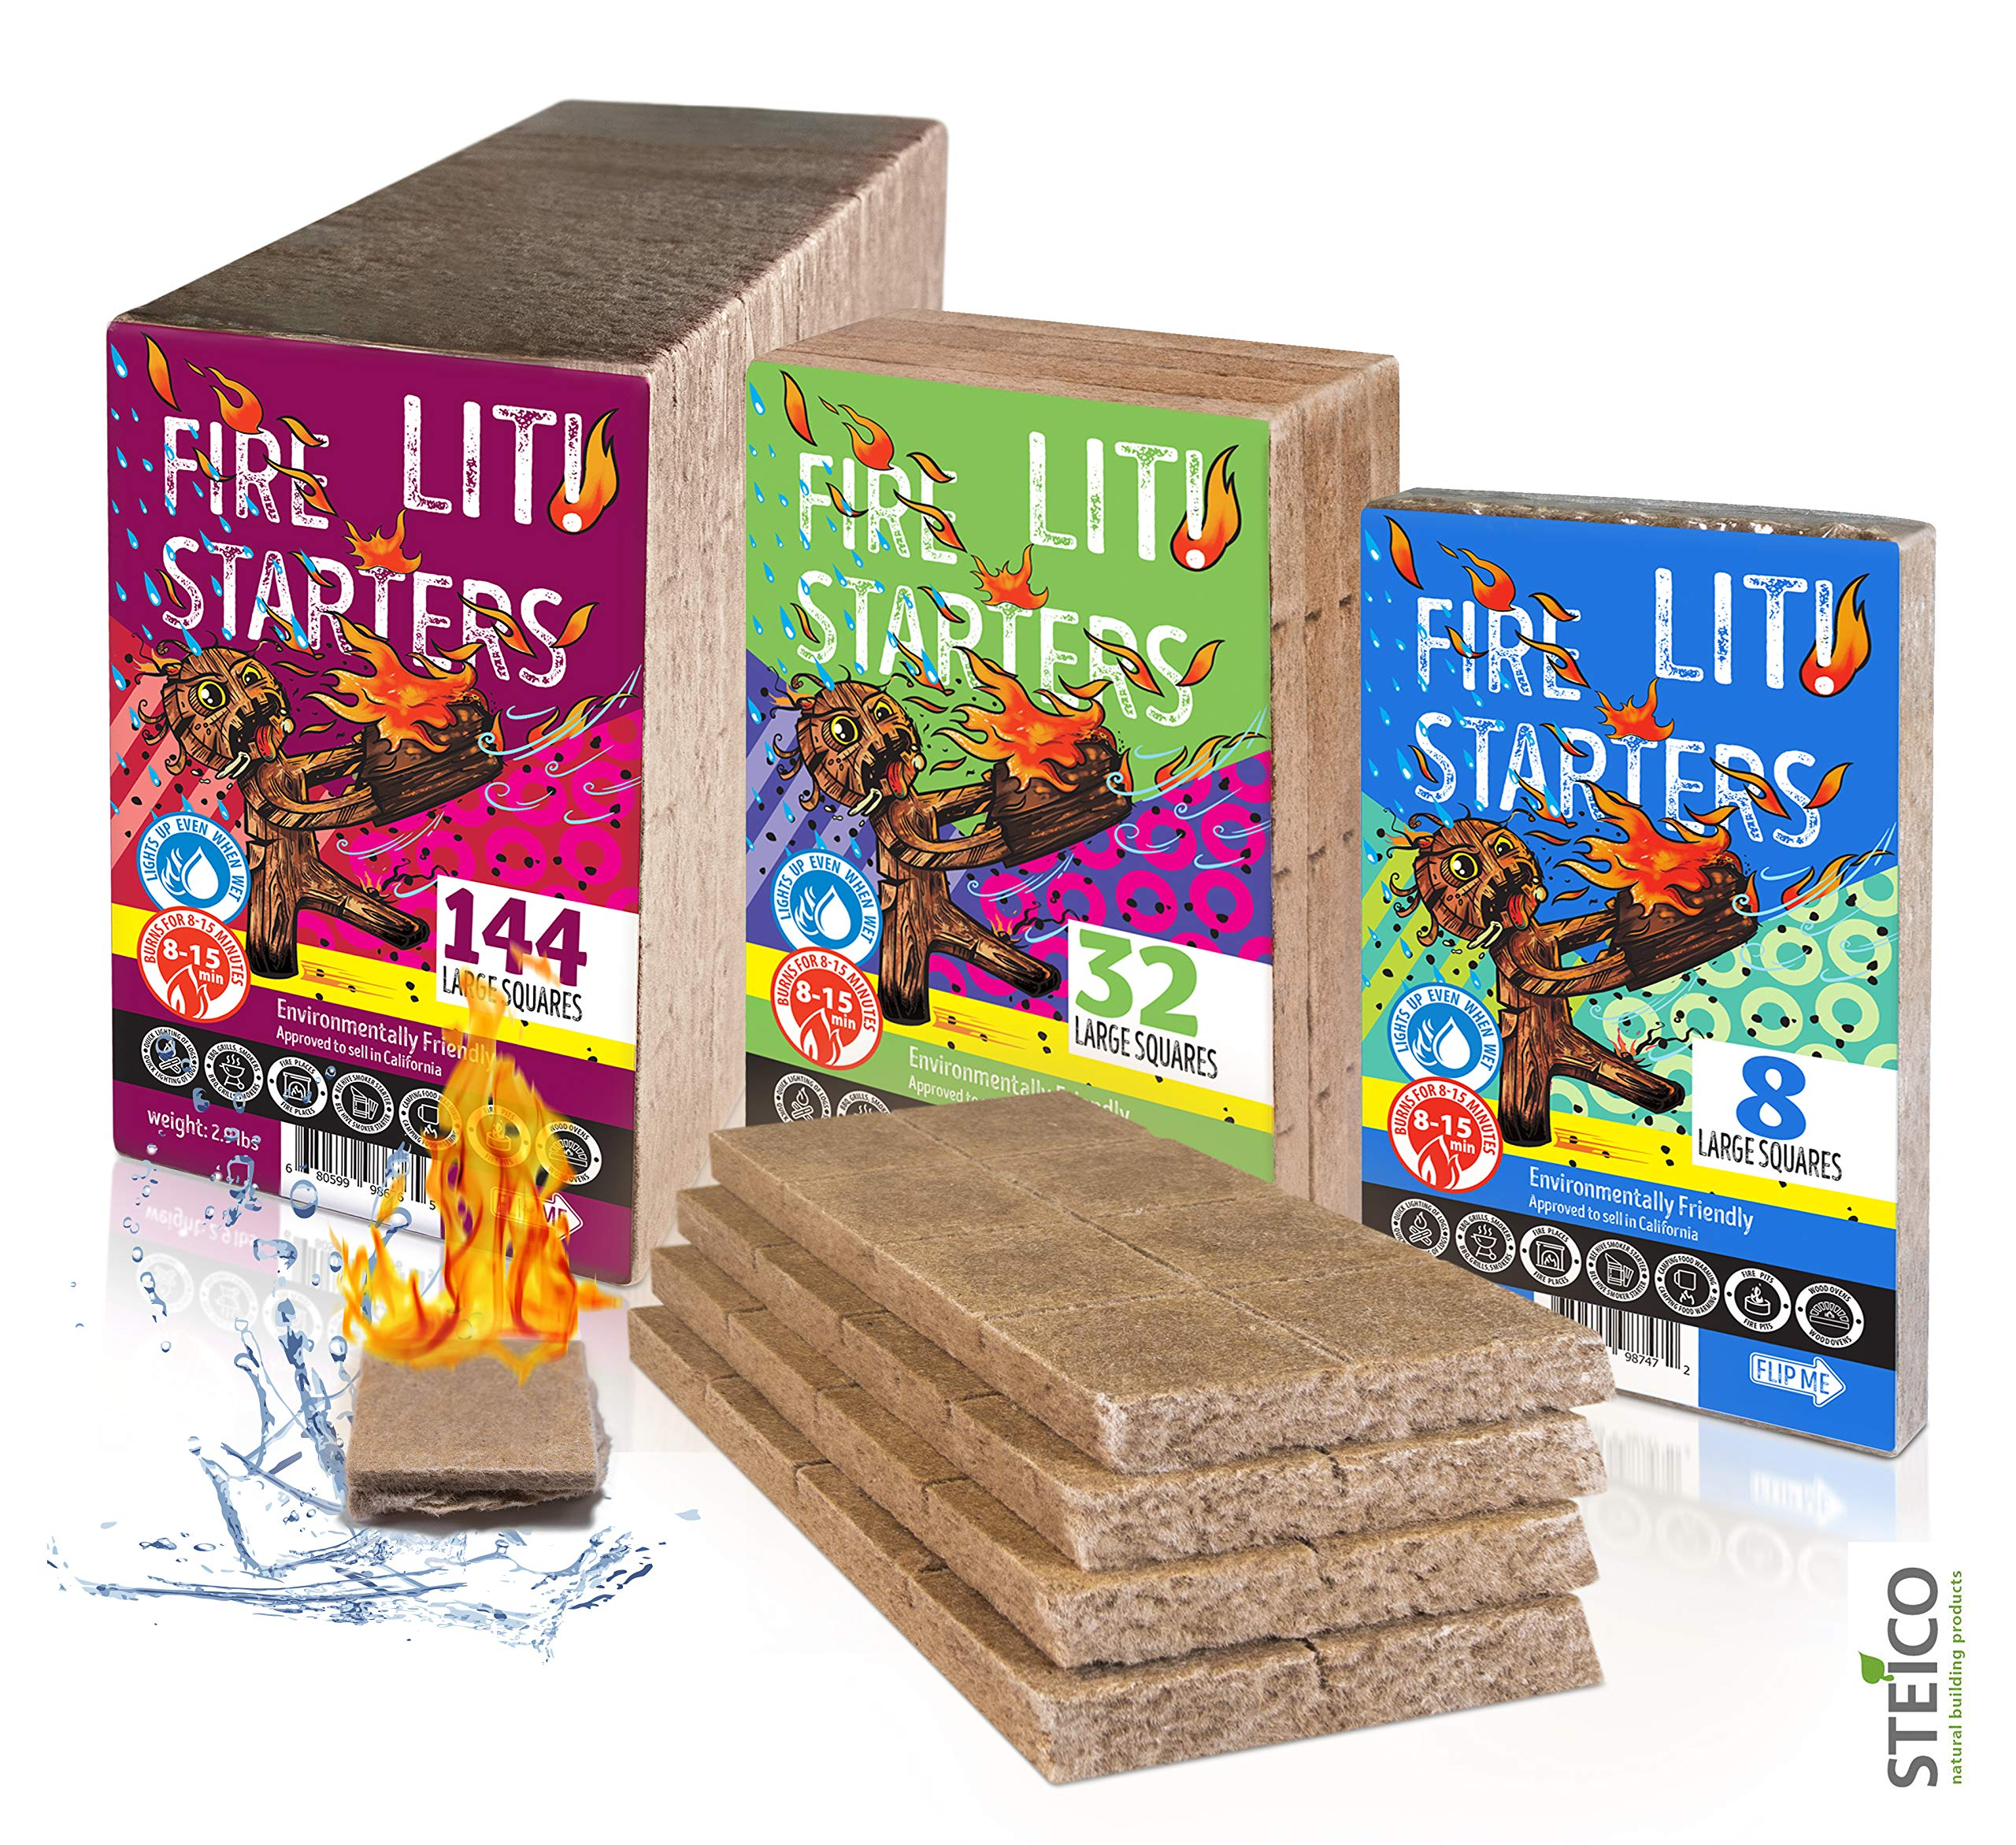 STEICO Large Squares   Waterproof Fire Starters   All Natural   Burns 8-15 min   Charcoal - Logs - BBQ - Grill - Campfire - Fireplace - Fire Pit - Wood Oven and Stove   8, 32, 144 Firestarters